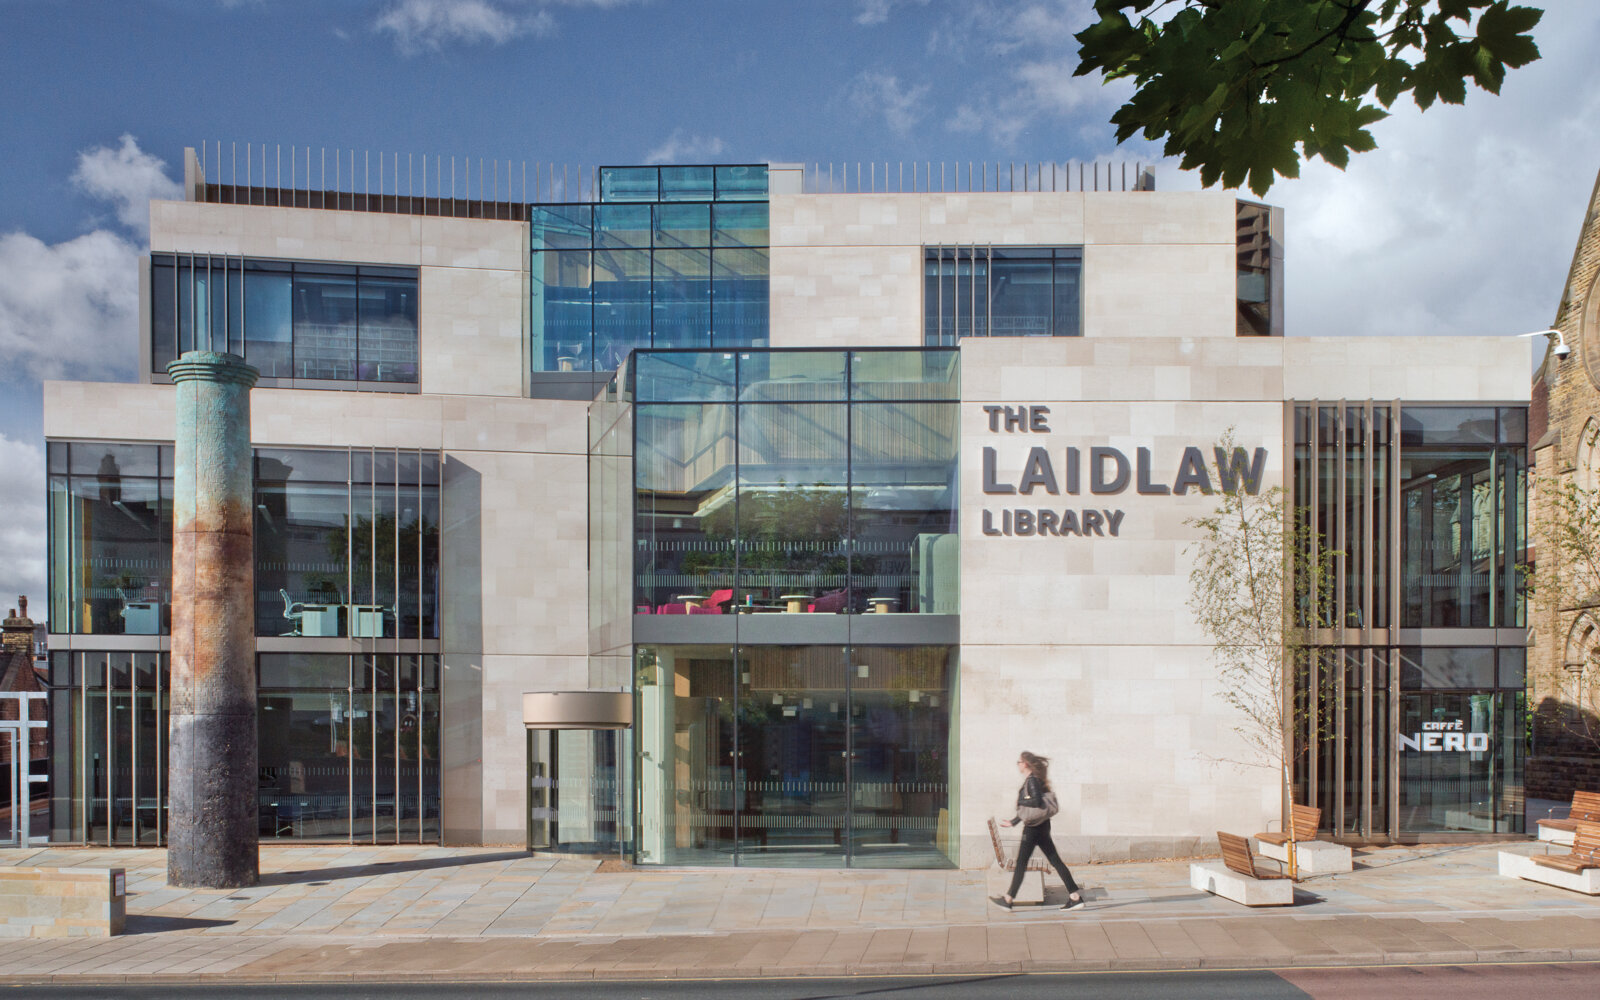 The Laidlaw Library exterior